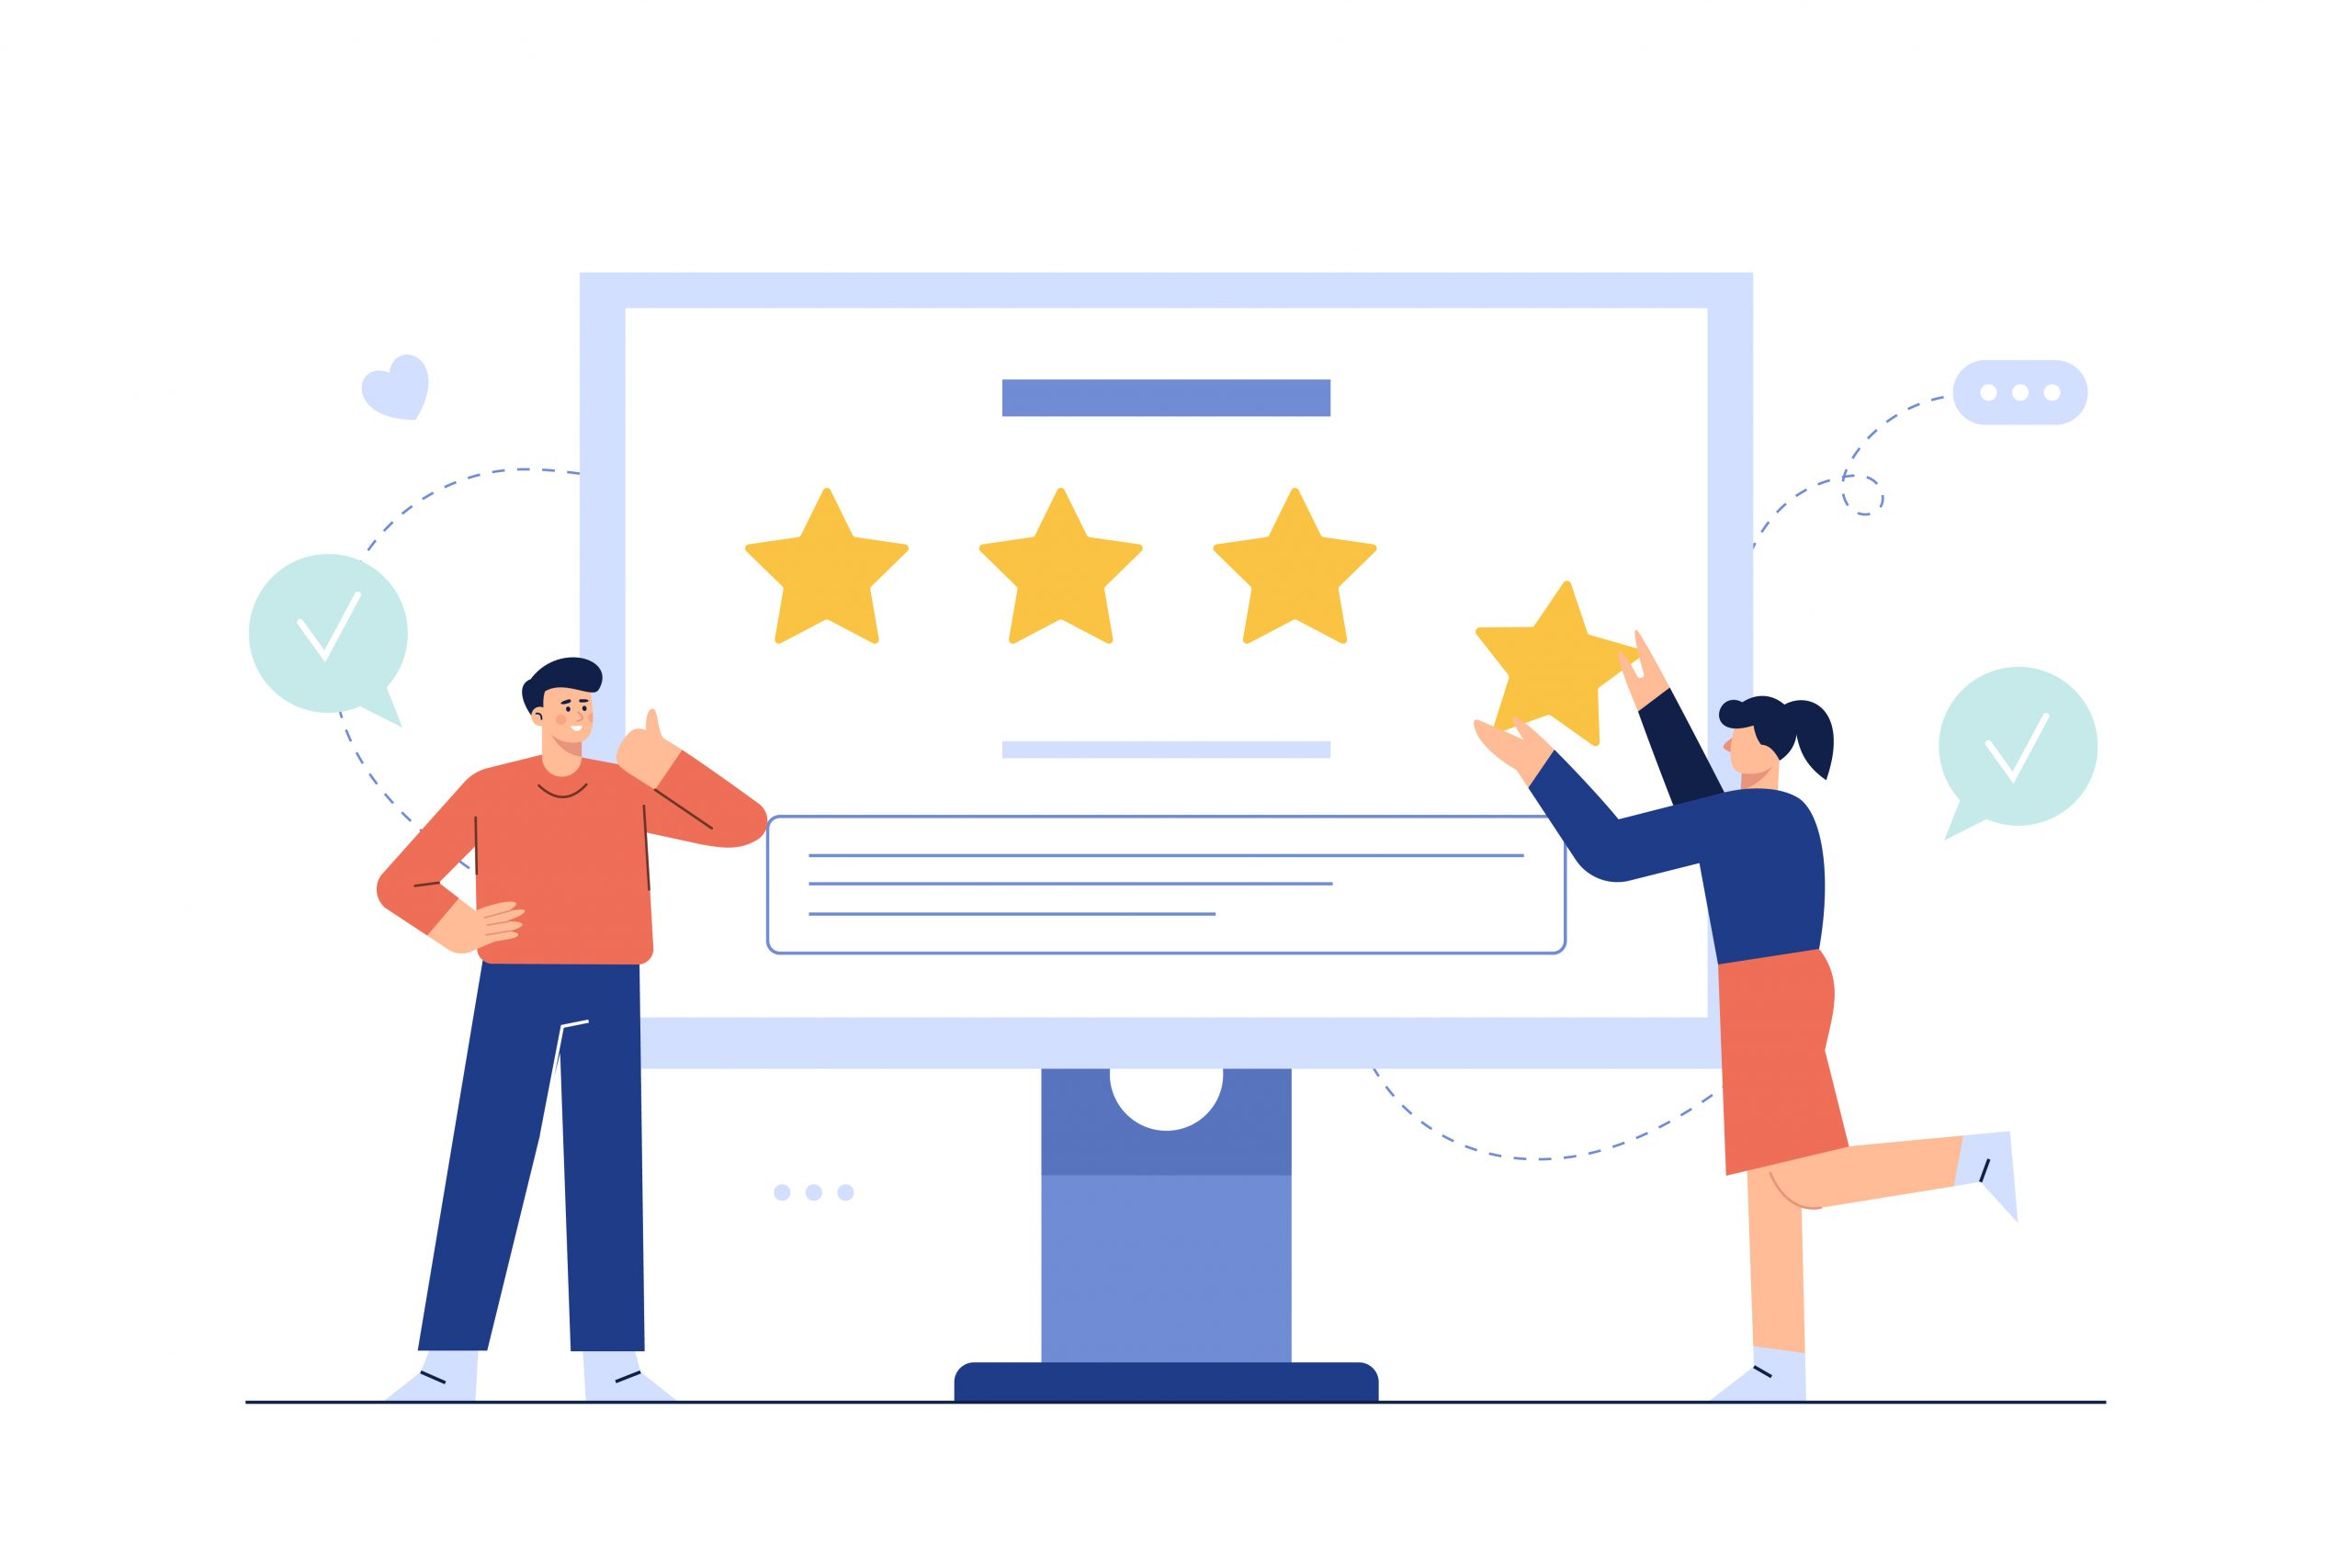 Check-Out Collaboration Tools Reviews From Other Customers